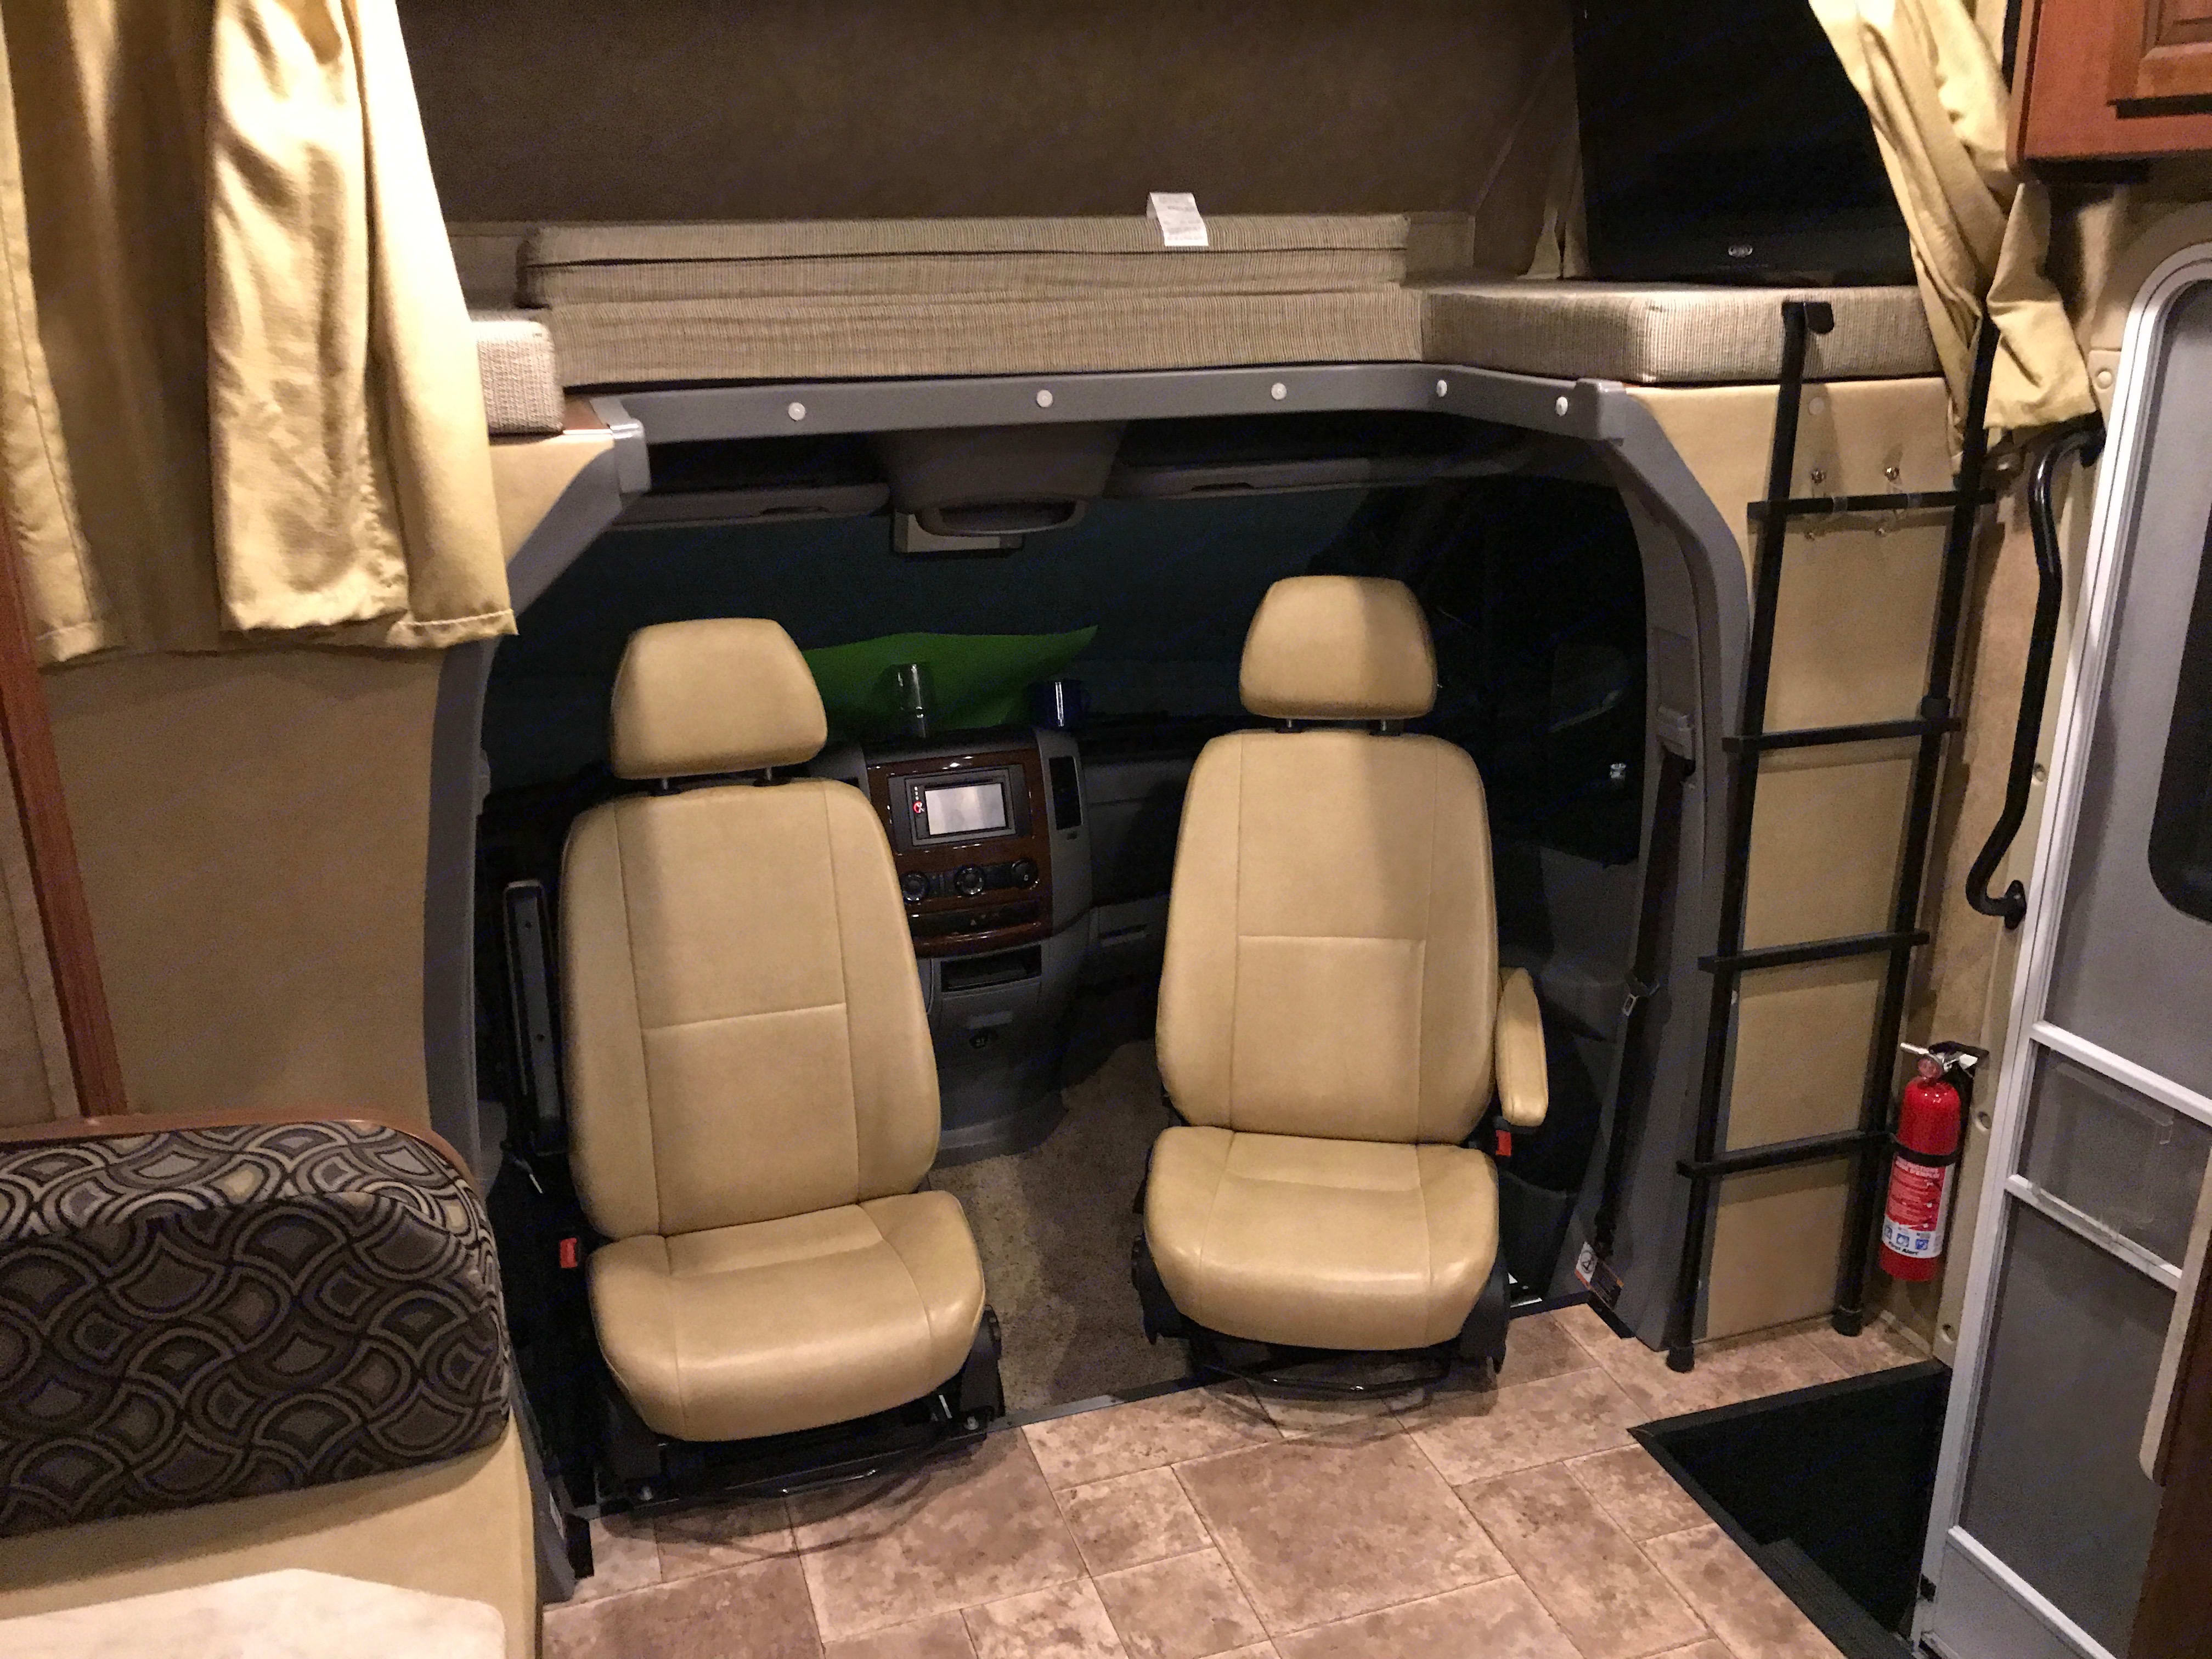 Driver and Passenger seats swivel for additional seating. Forest River Solera 24S 2015